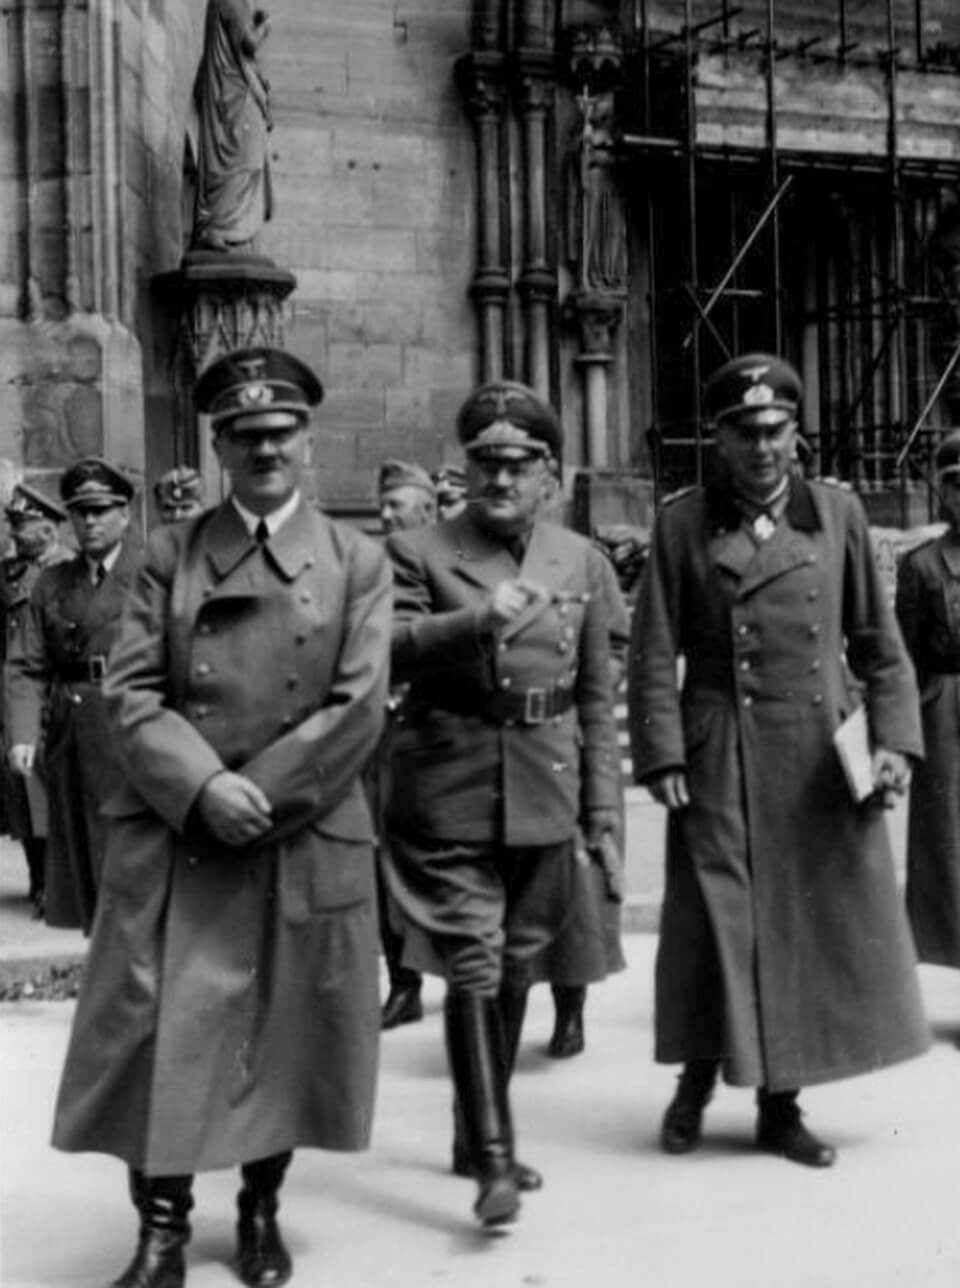 Hitler's visit to the city of Strasbourg, June 28, 1940